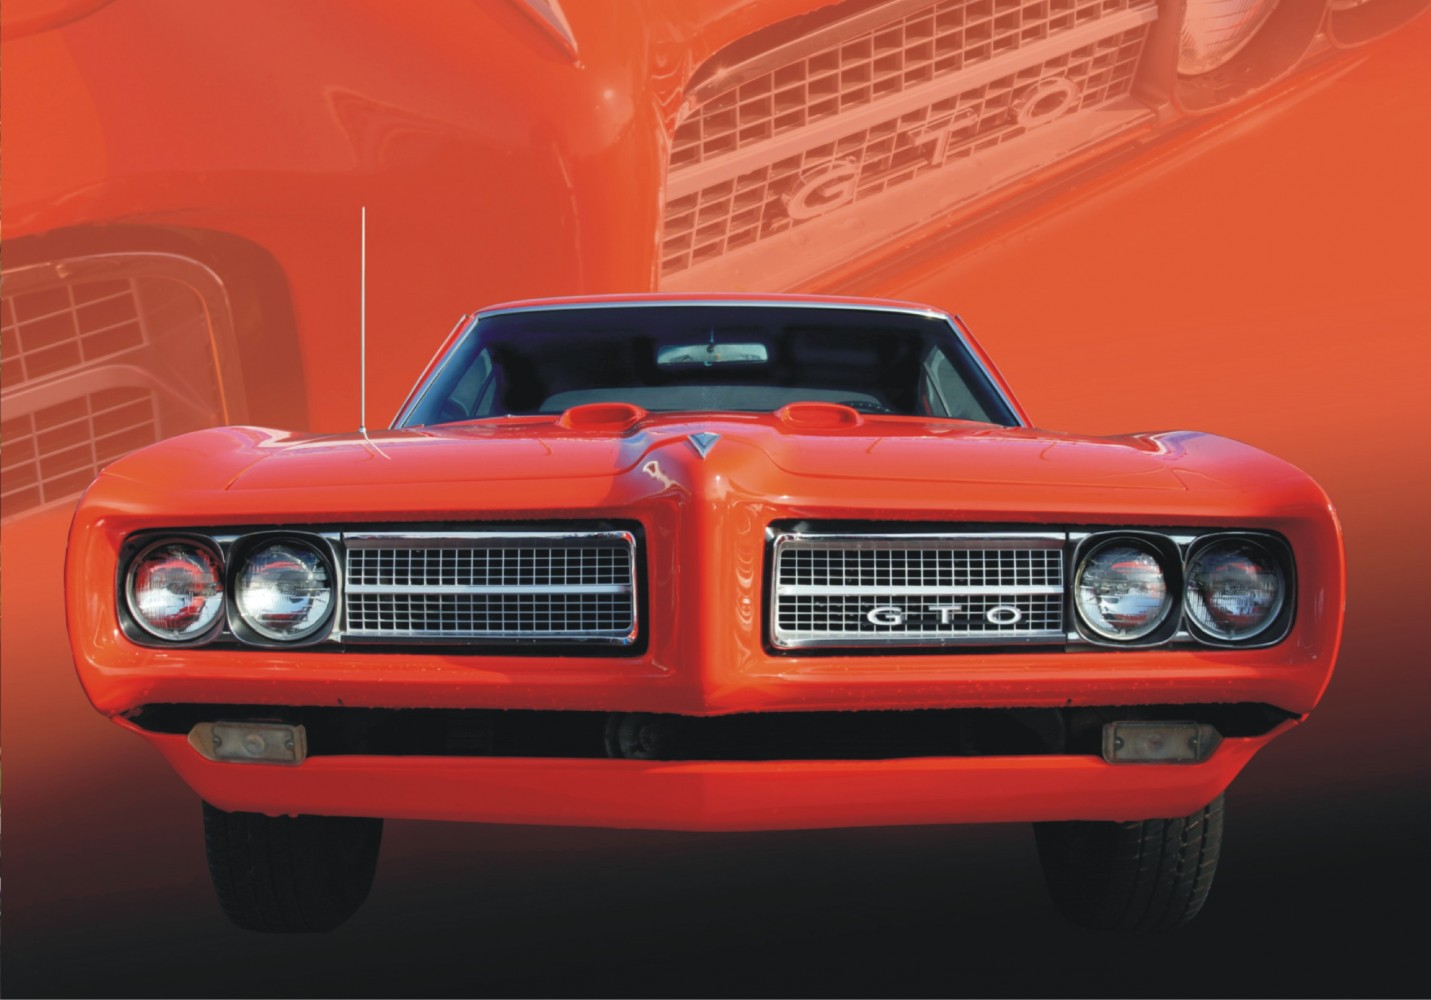 fototapete tapete pontiac gto in rot us car rot floral. Black Bedroom Furniture Sets. Home Design Ideas